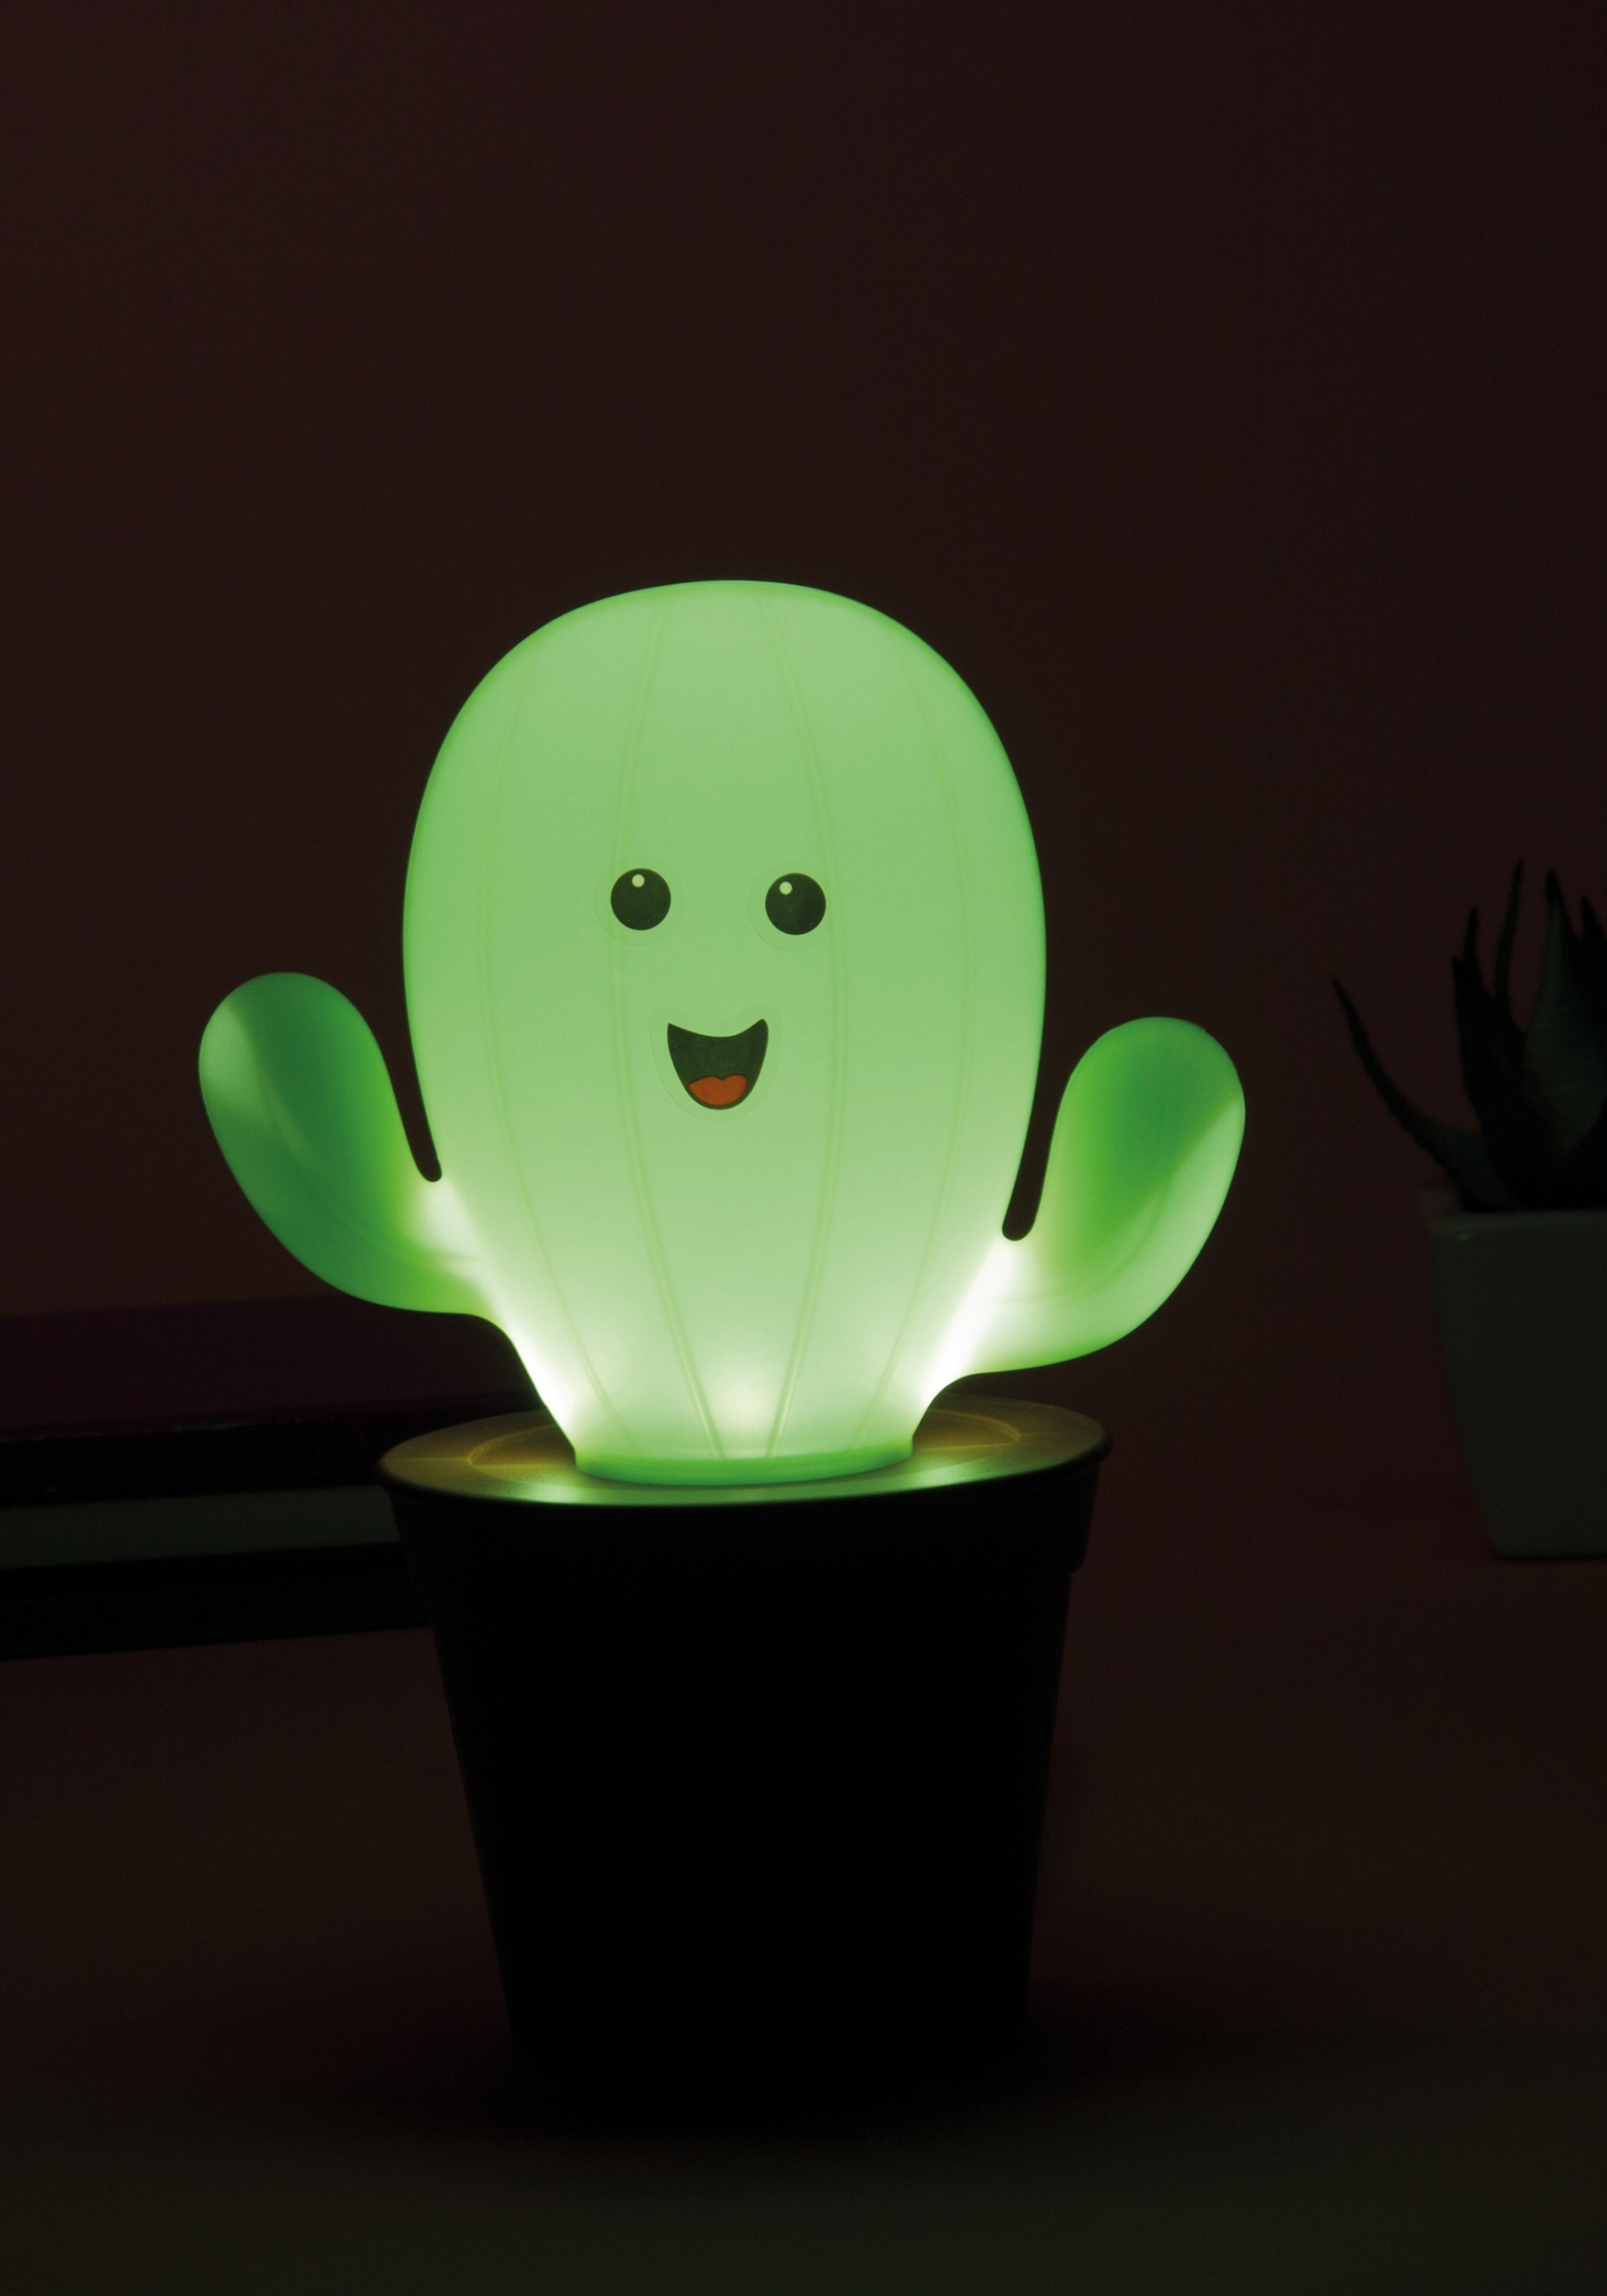 Cactus Verlichting Cactus Lamp Home Lighting Decor